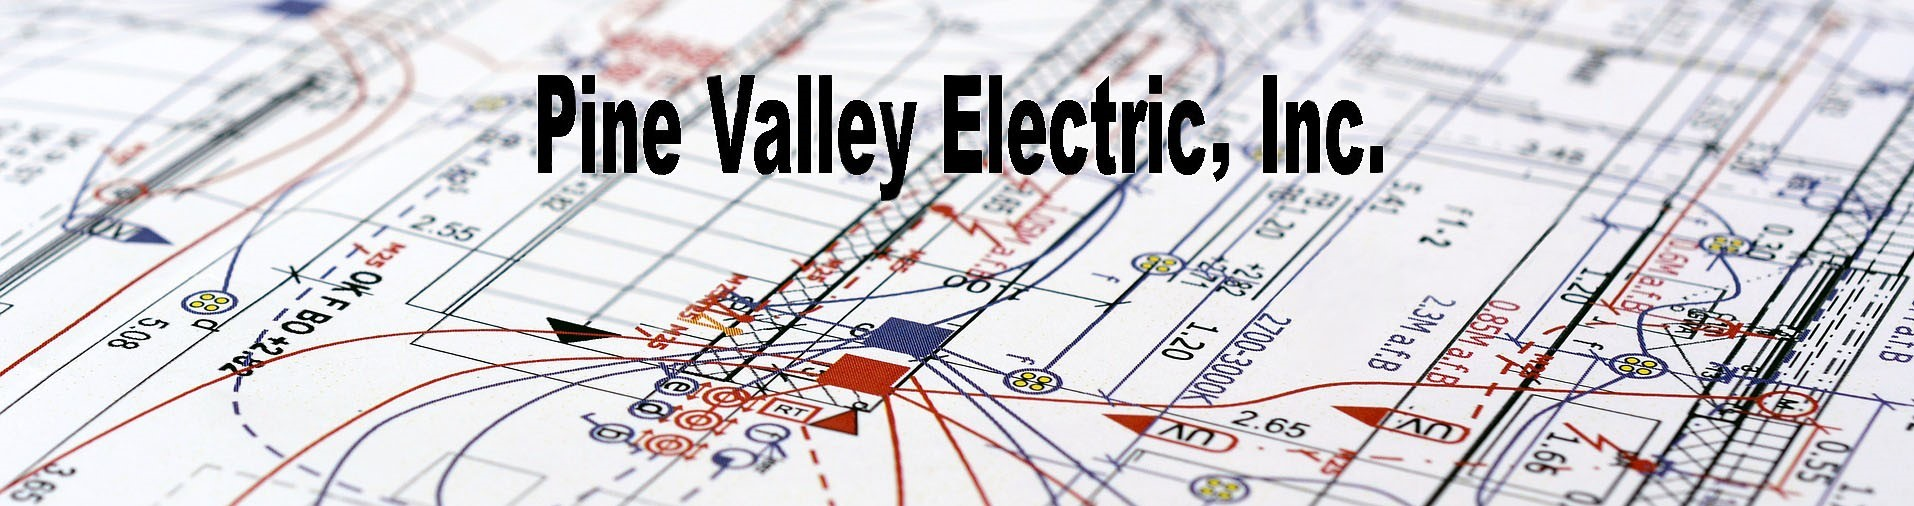 pinevalleyelectric.com